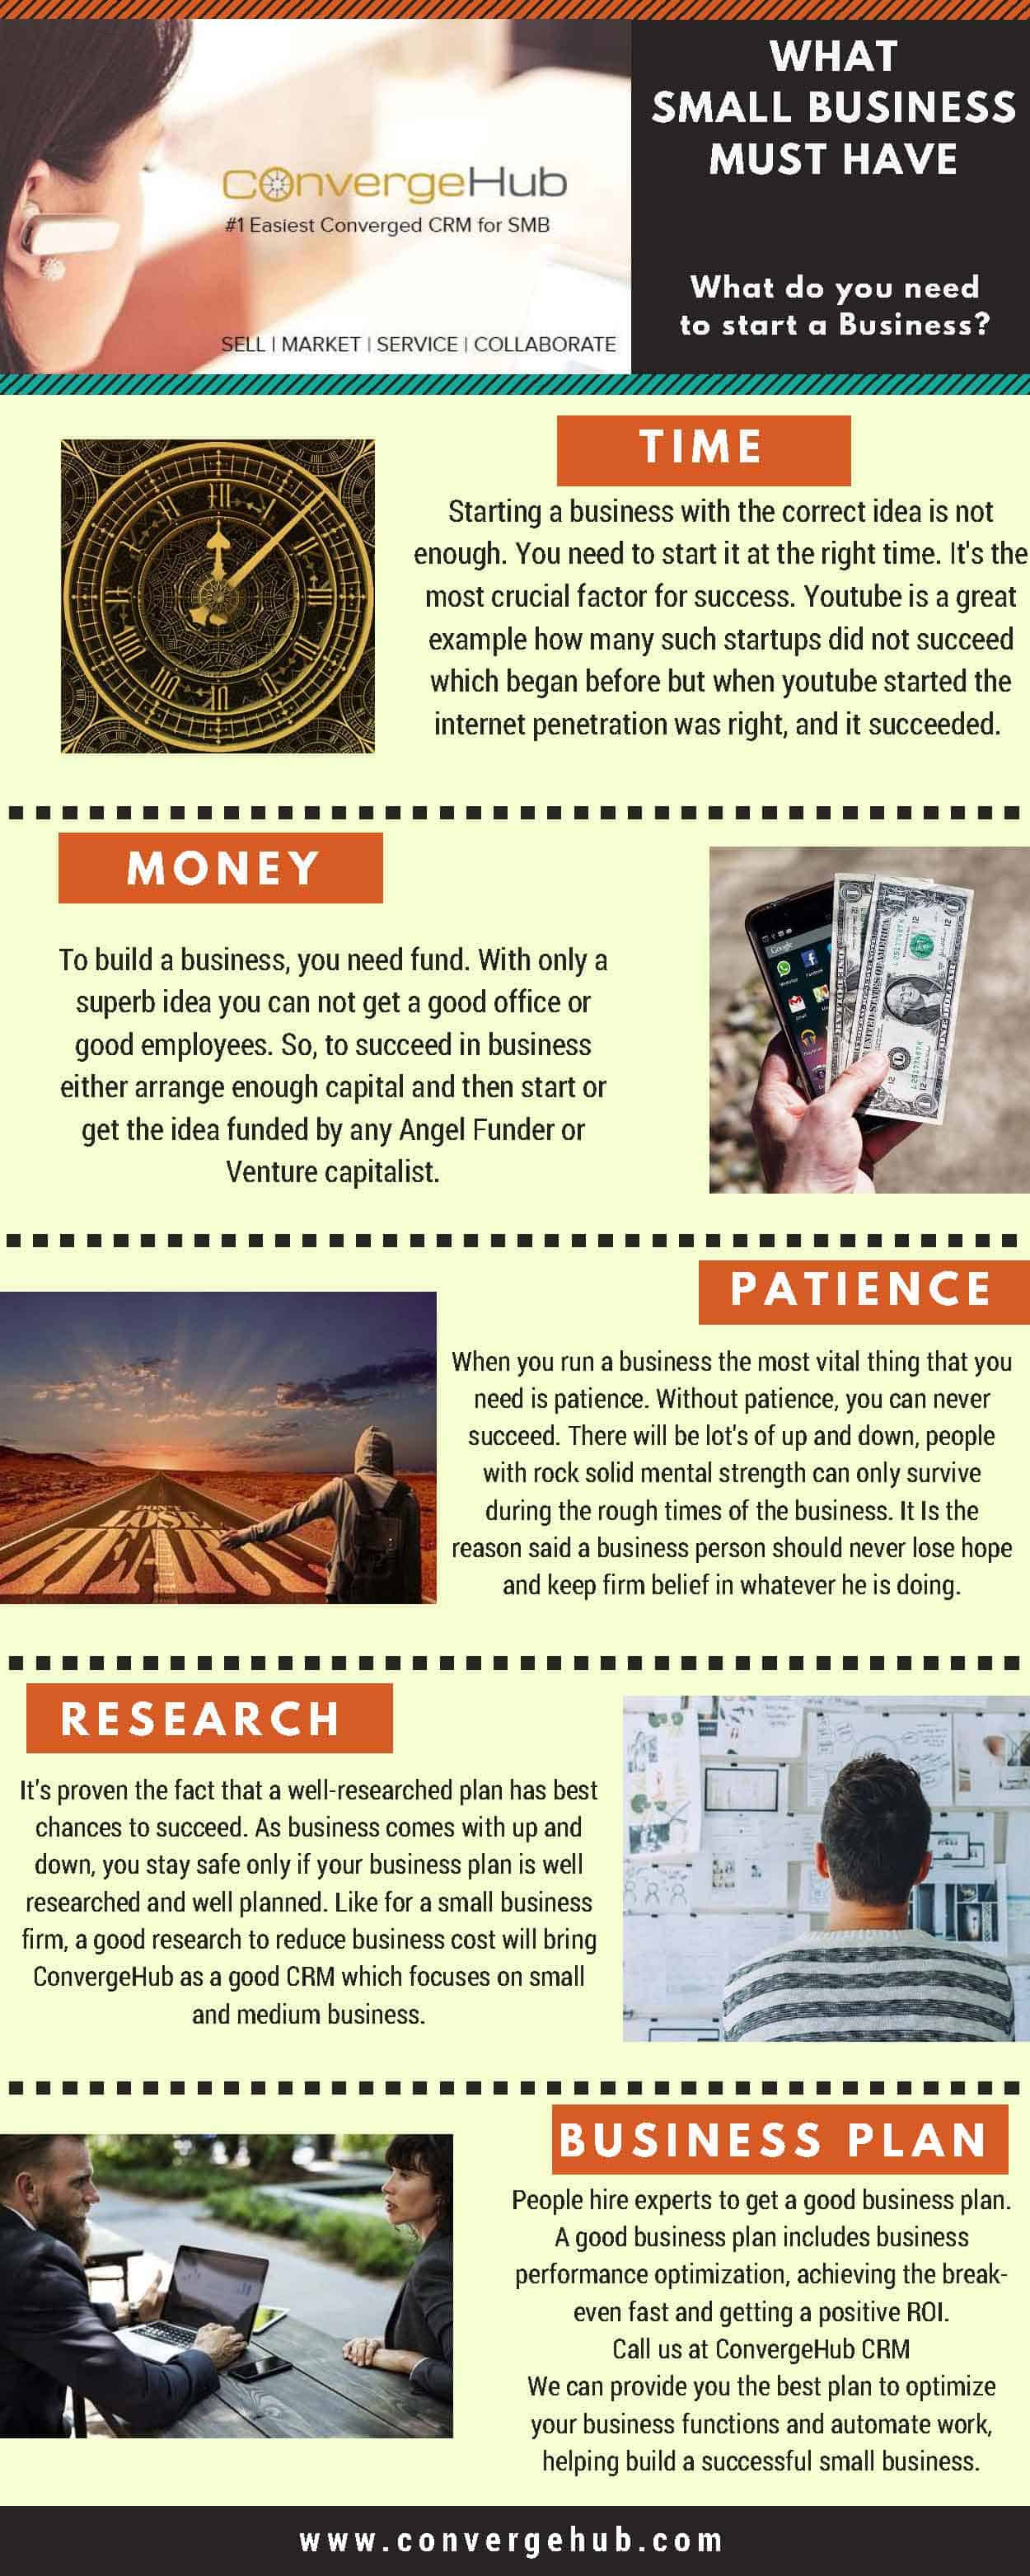 Secrets of Small Business Success, What a Small Business Must Have